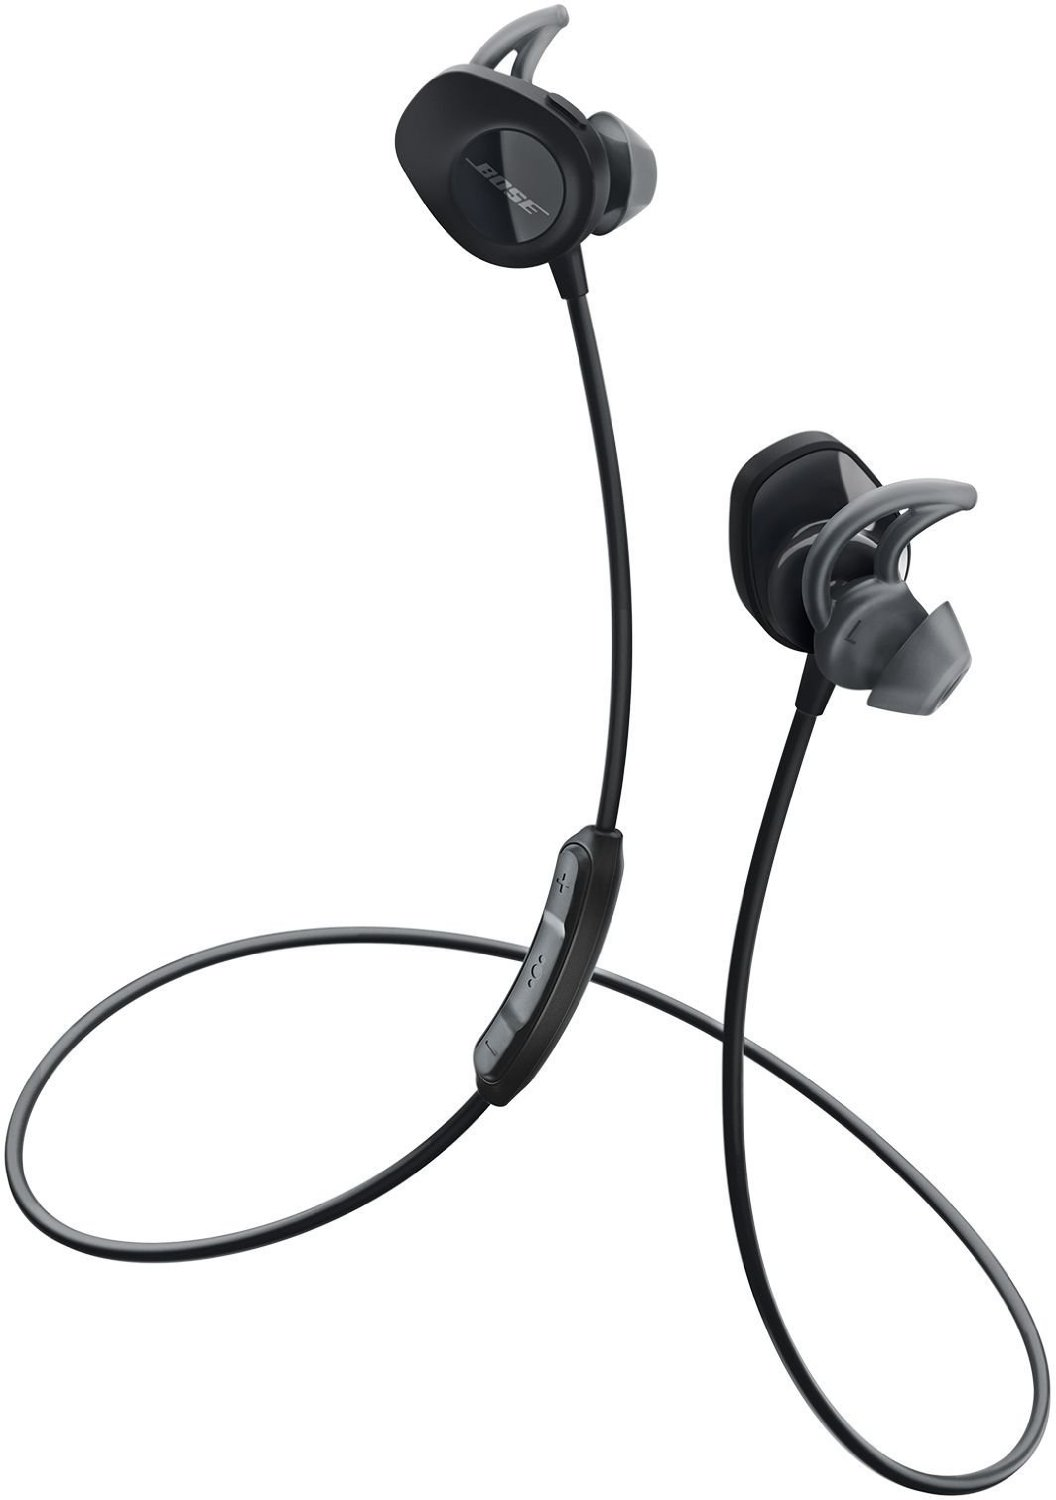 bose-best-bluetooth-headphones-earbuds-2016.jpg